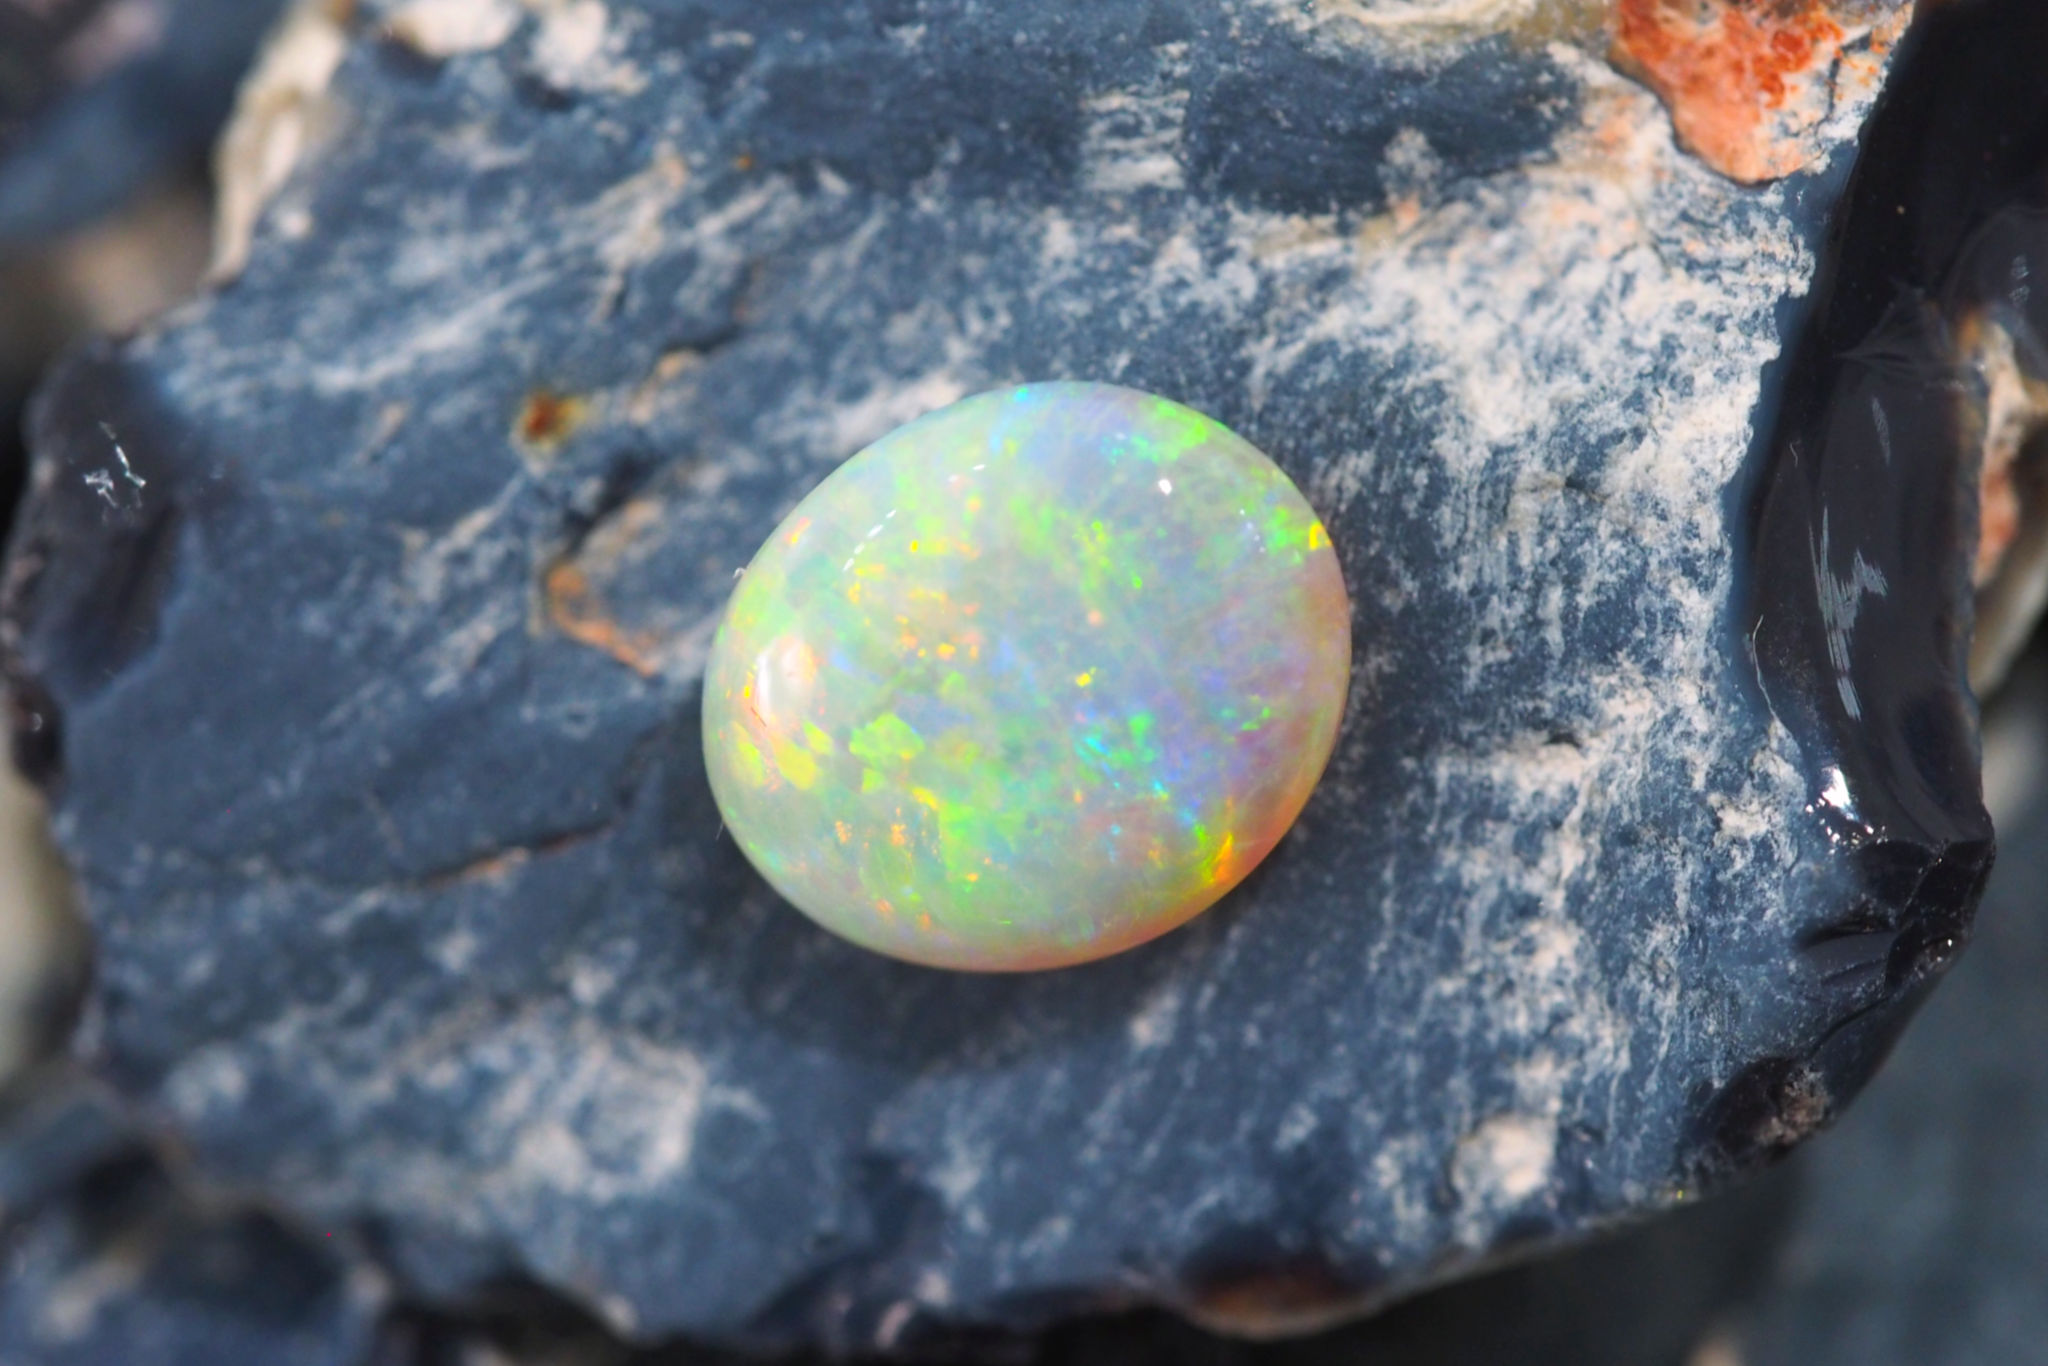 White or Light Opal - First mined at White Cliffs, NSW, today White or Light Opal mainly comes from Coober Pedy and Mintabie in South Australia. Stones range from transparent to nearly opaque, and feature a rainbow of brilliant colours set against a pale light or white body tone or background. This type of opal is also known as 'milky' opal, and is the most common type of opal found in Australia.